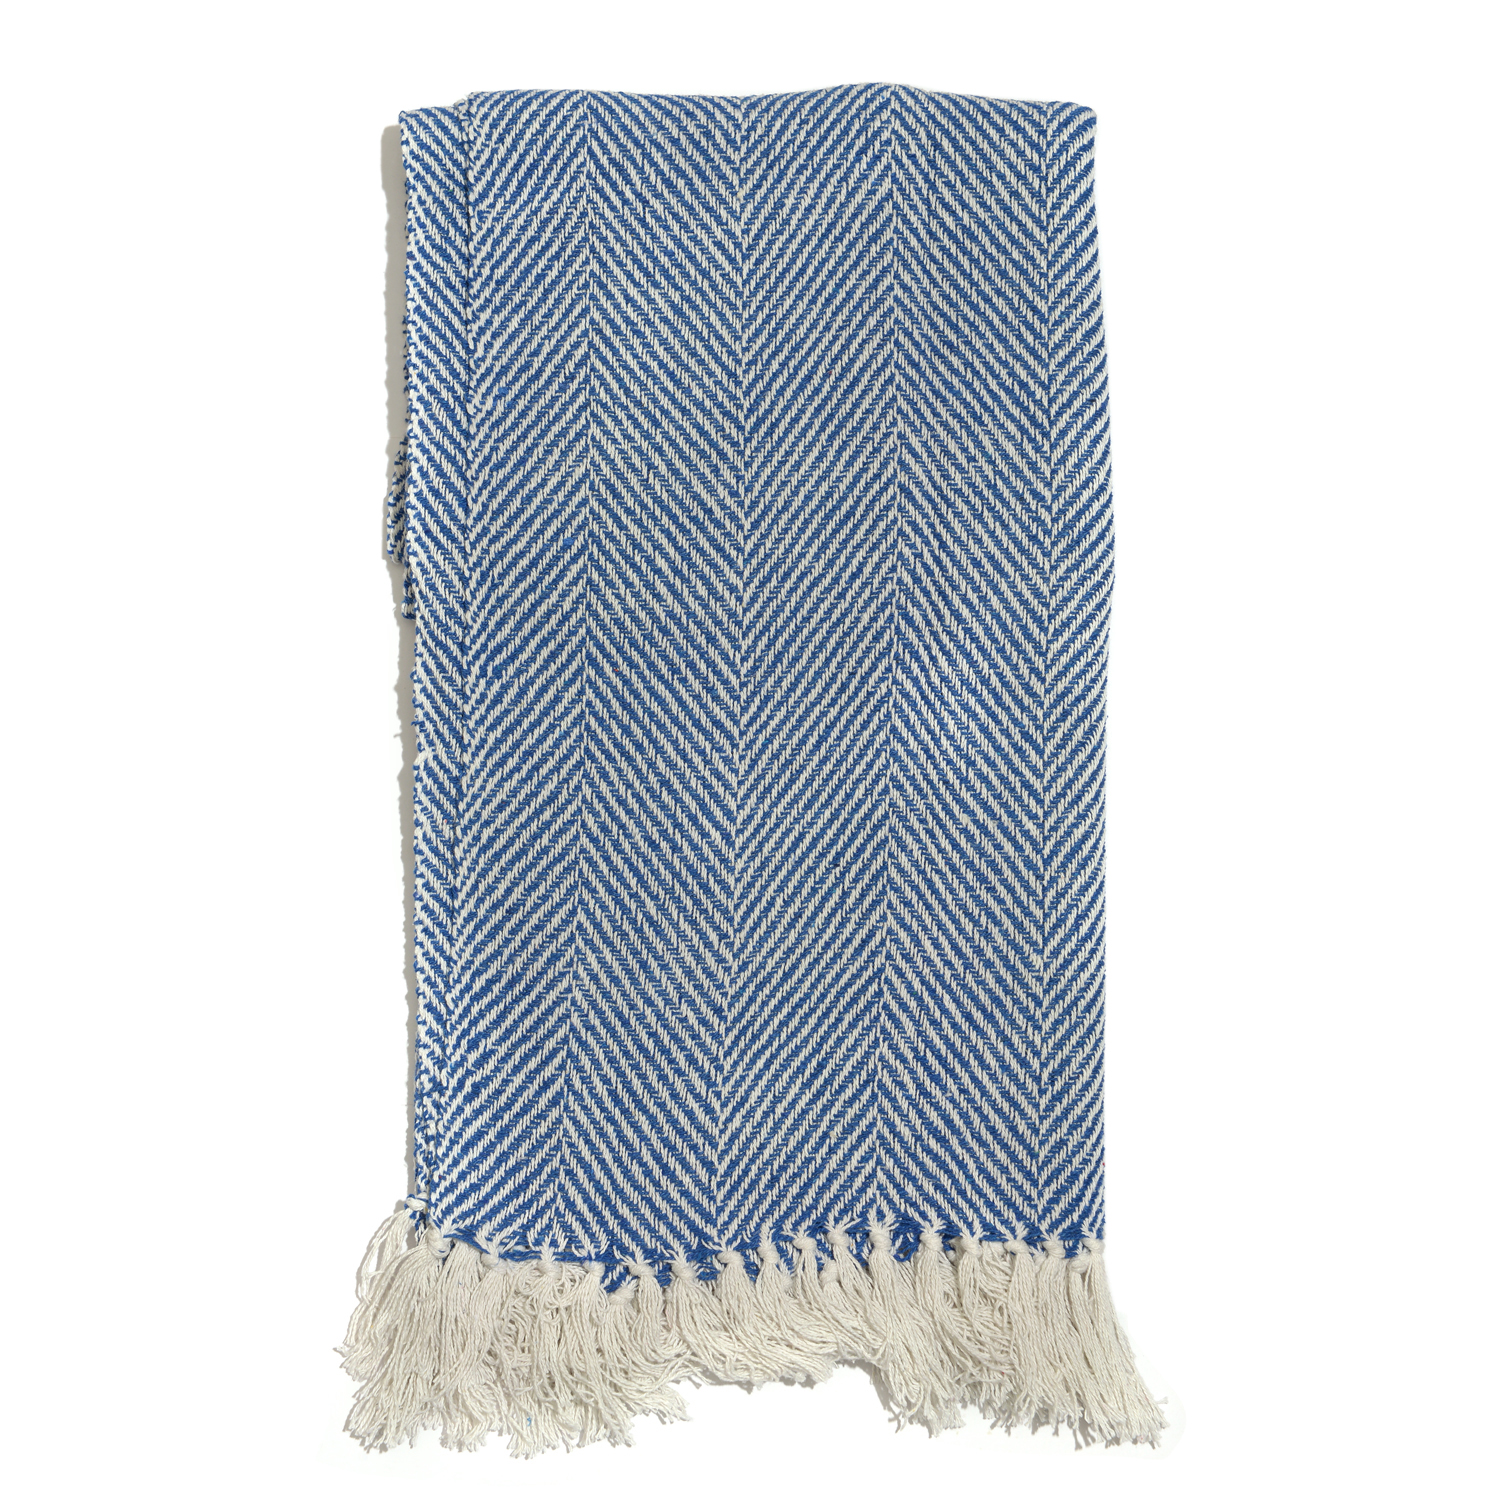 Blue 100% Cotton Twill Weave Throw 65x55 In